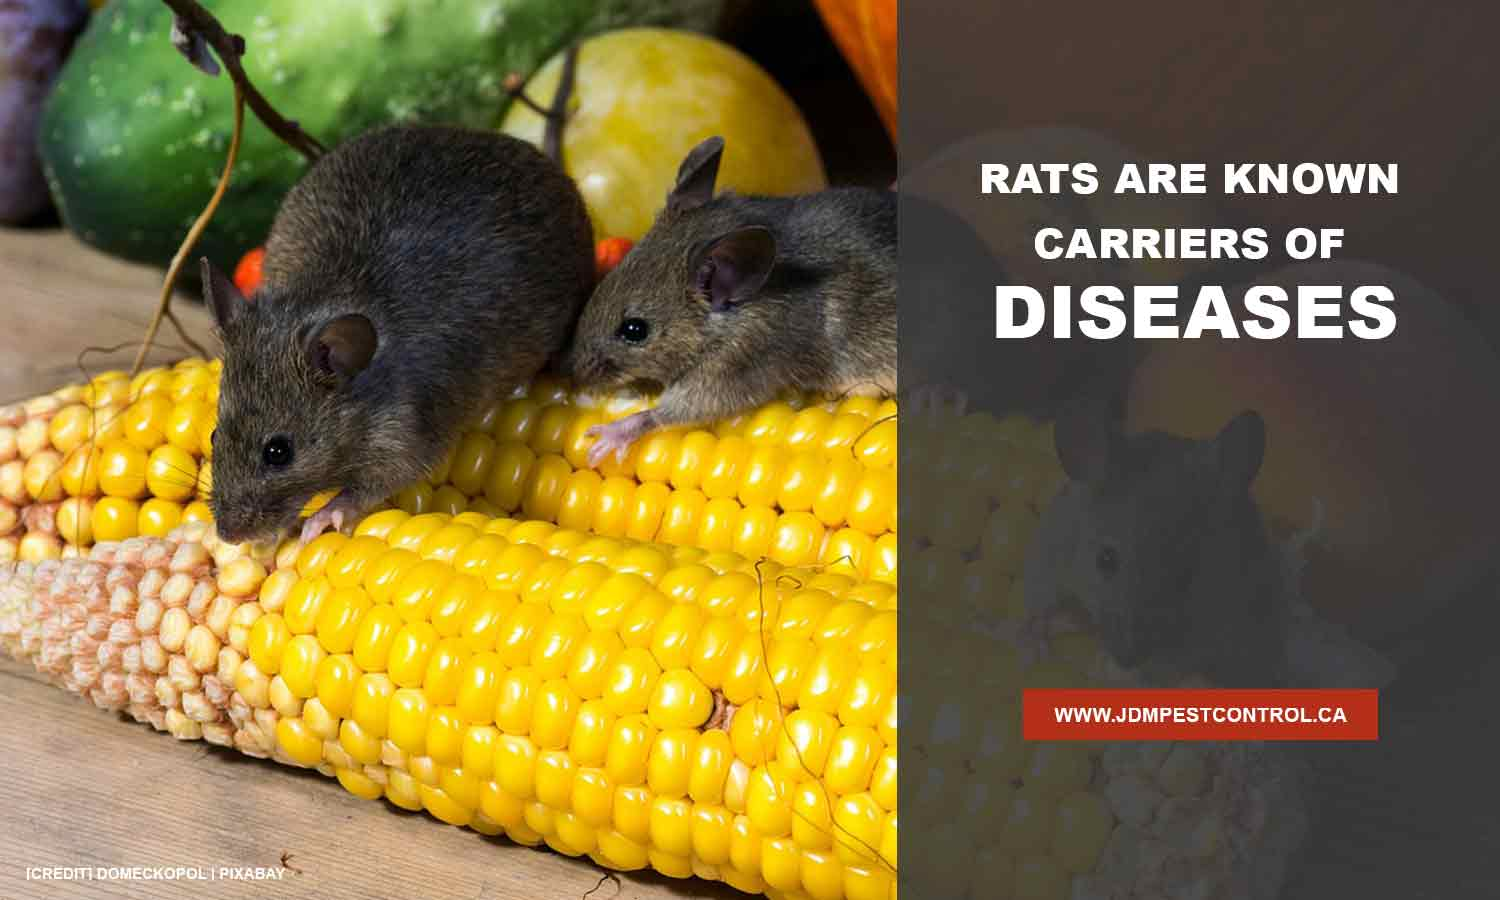 Rats are known carriers of diseases